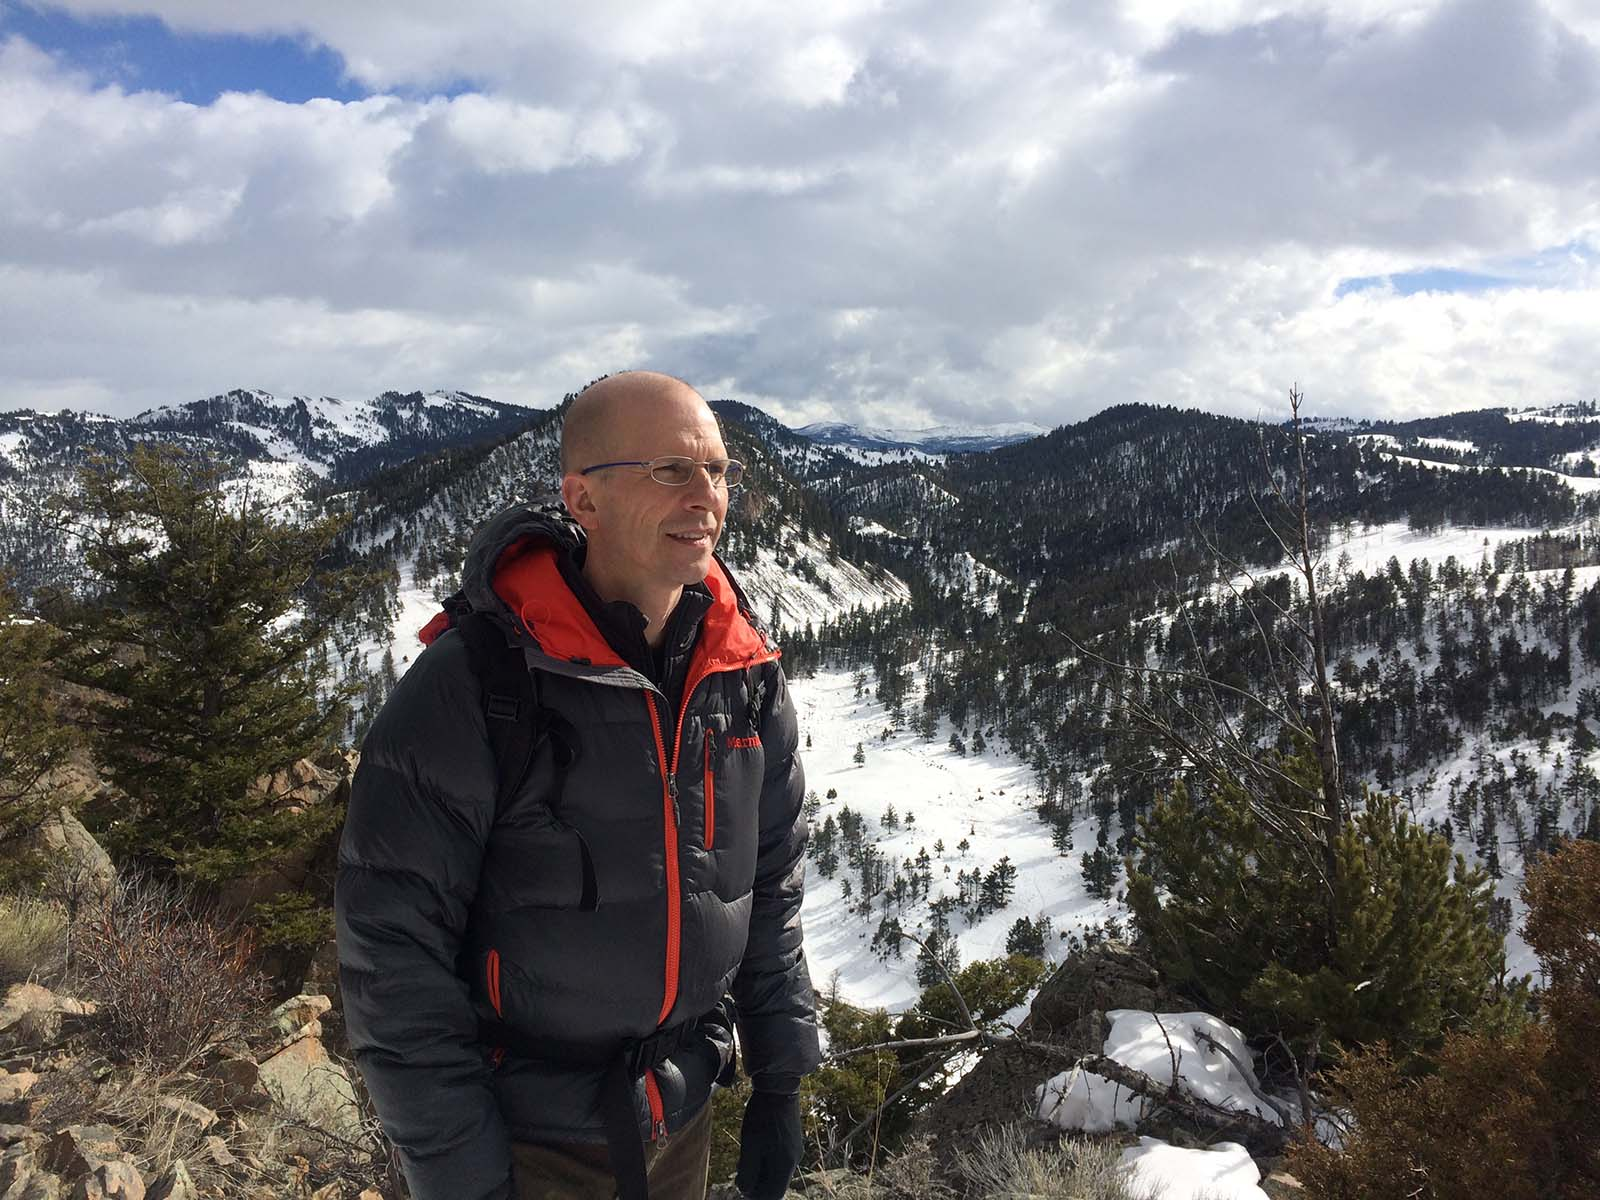 Frank T. van Manen speaks at our July 2 Lunchtime Expedition talk.